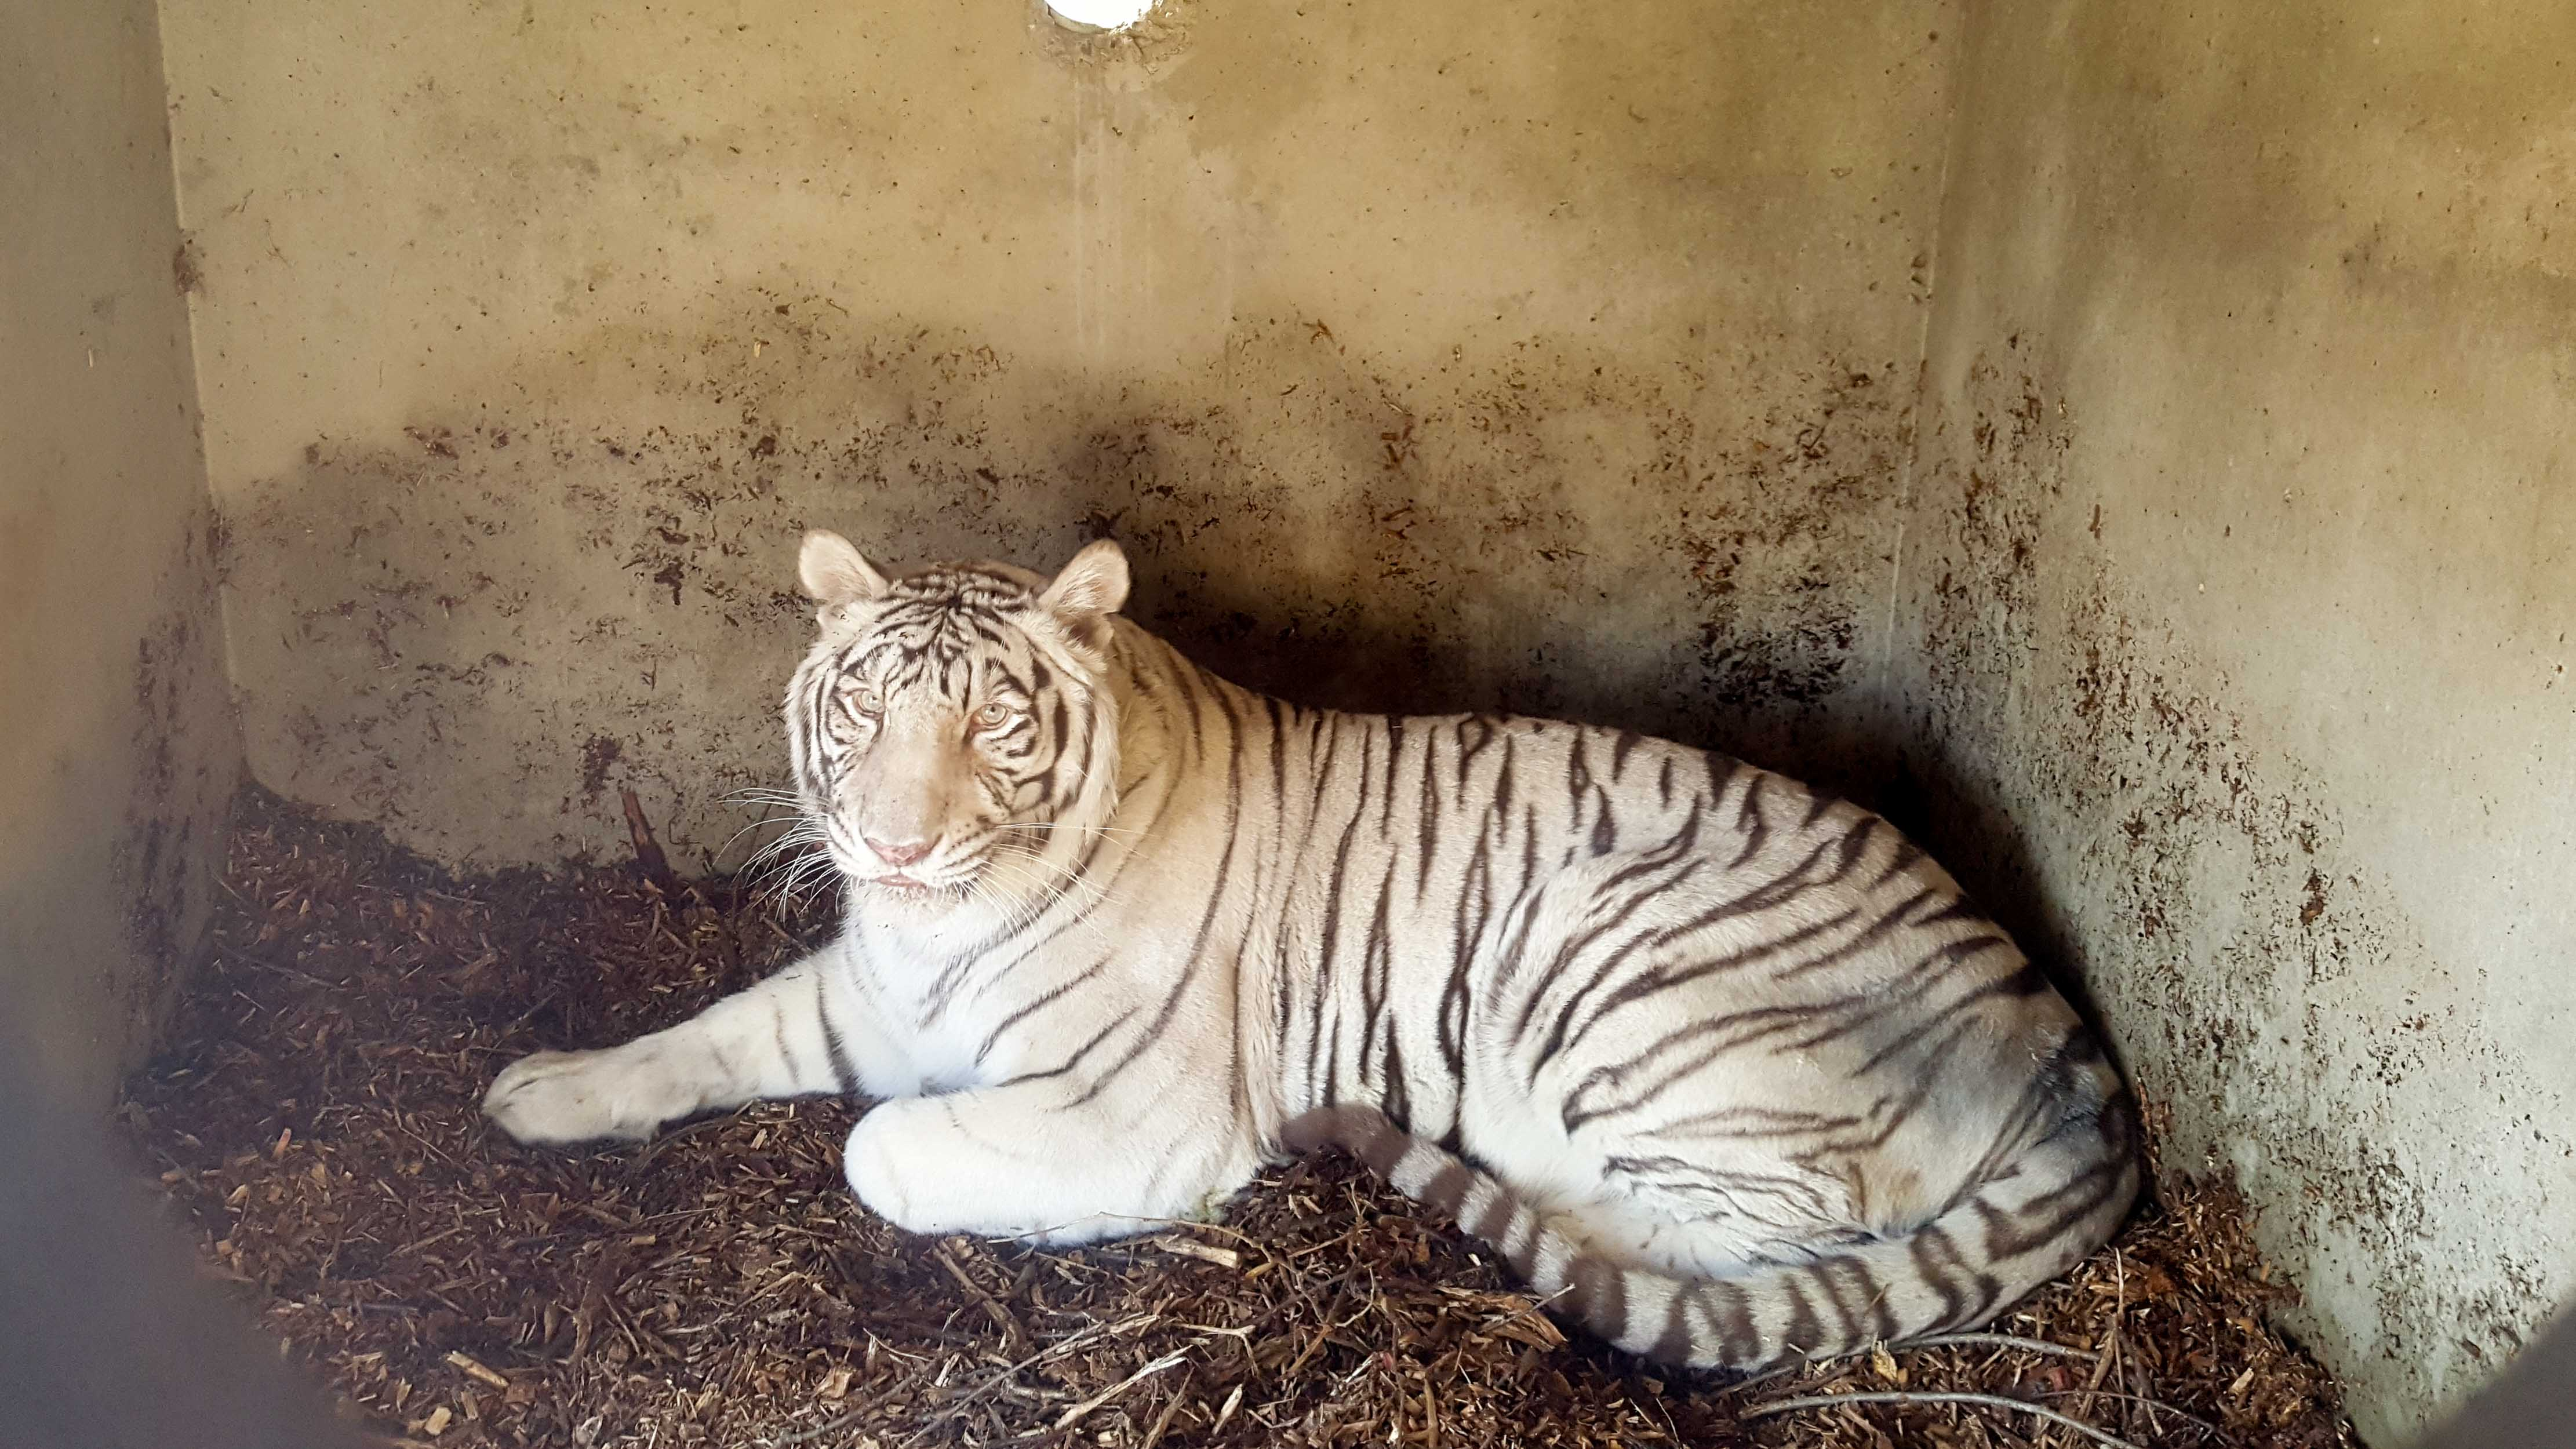 <p>The refuge says she will spend a few days in the night house area for observation but will then be given access to a large grassy habitat she will call home. (Photo courtesy: Turpentine Creek Wildlife Refuge)</p>